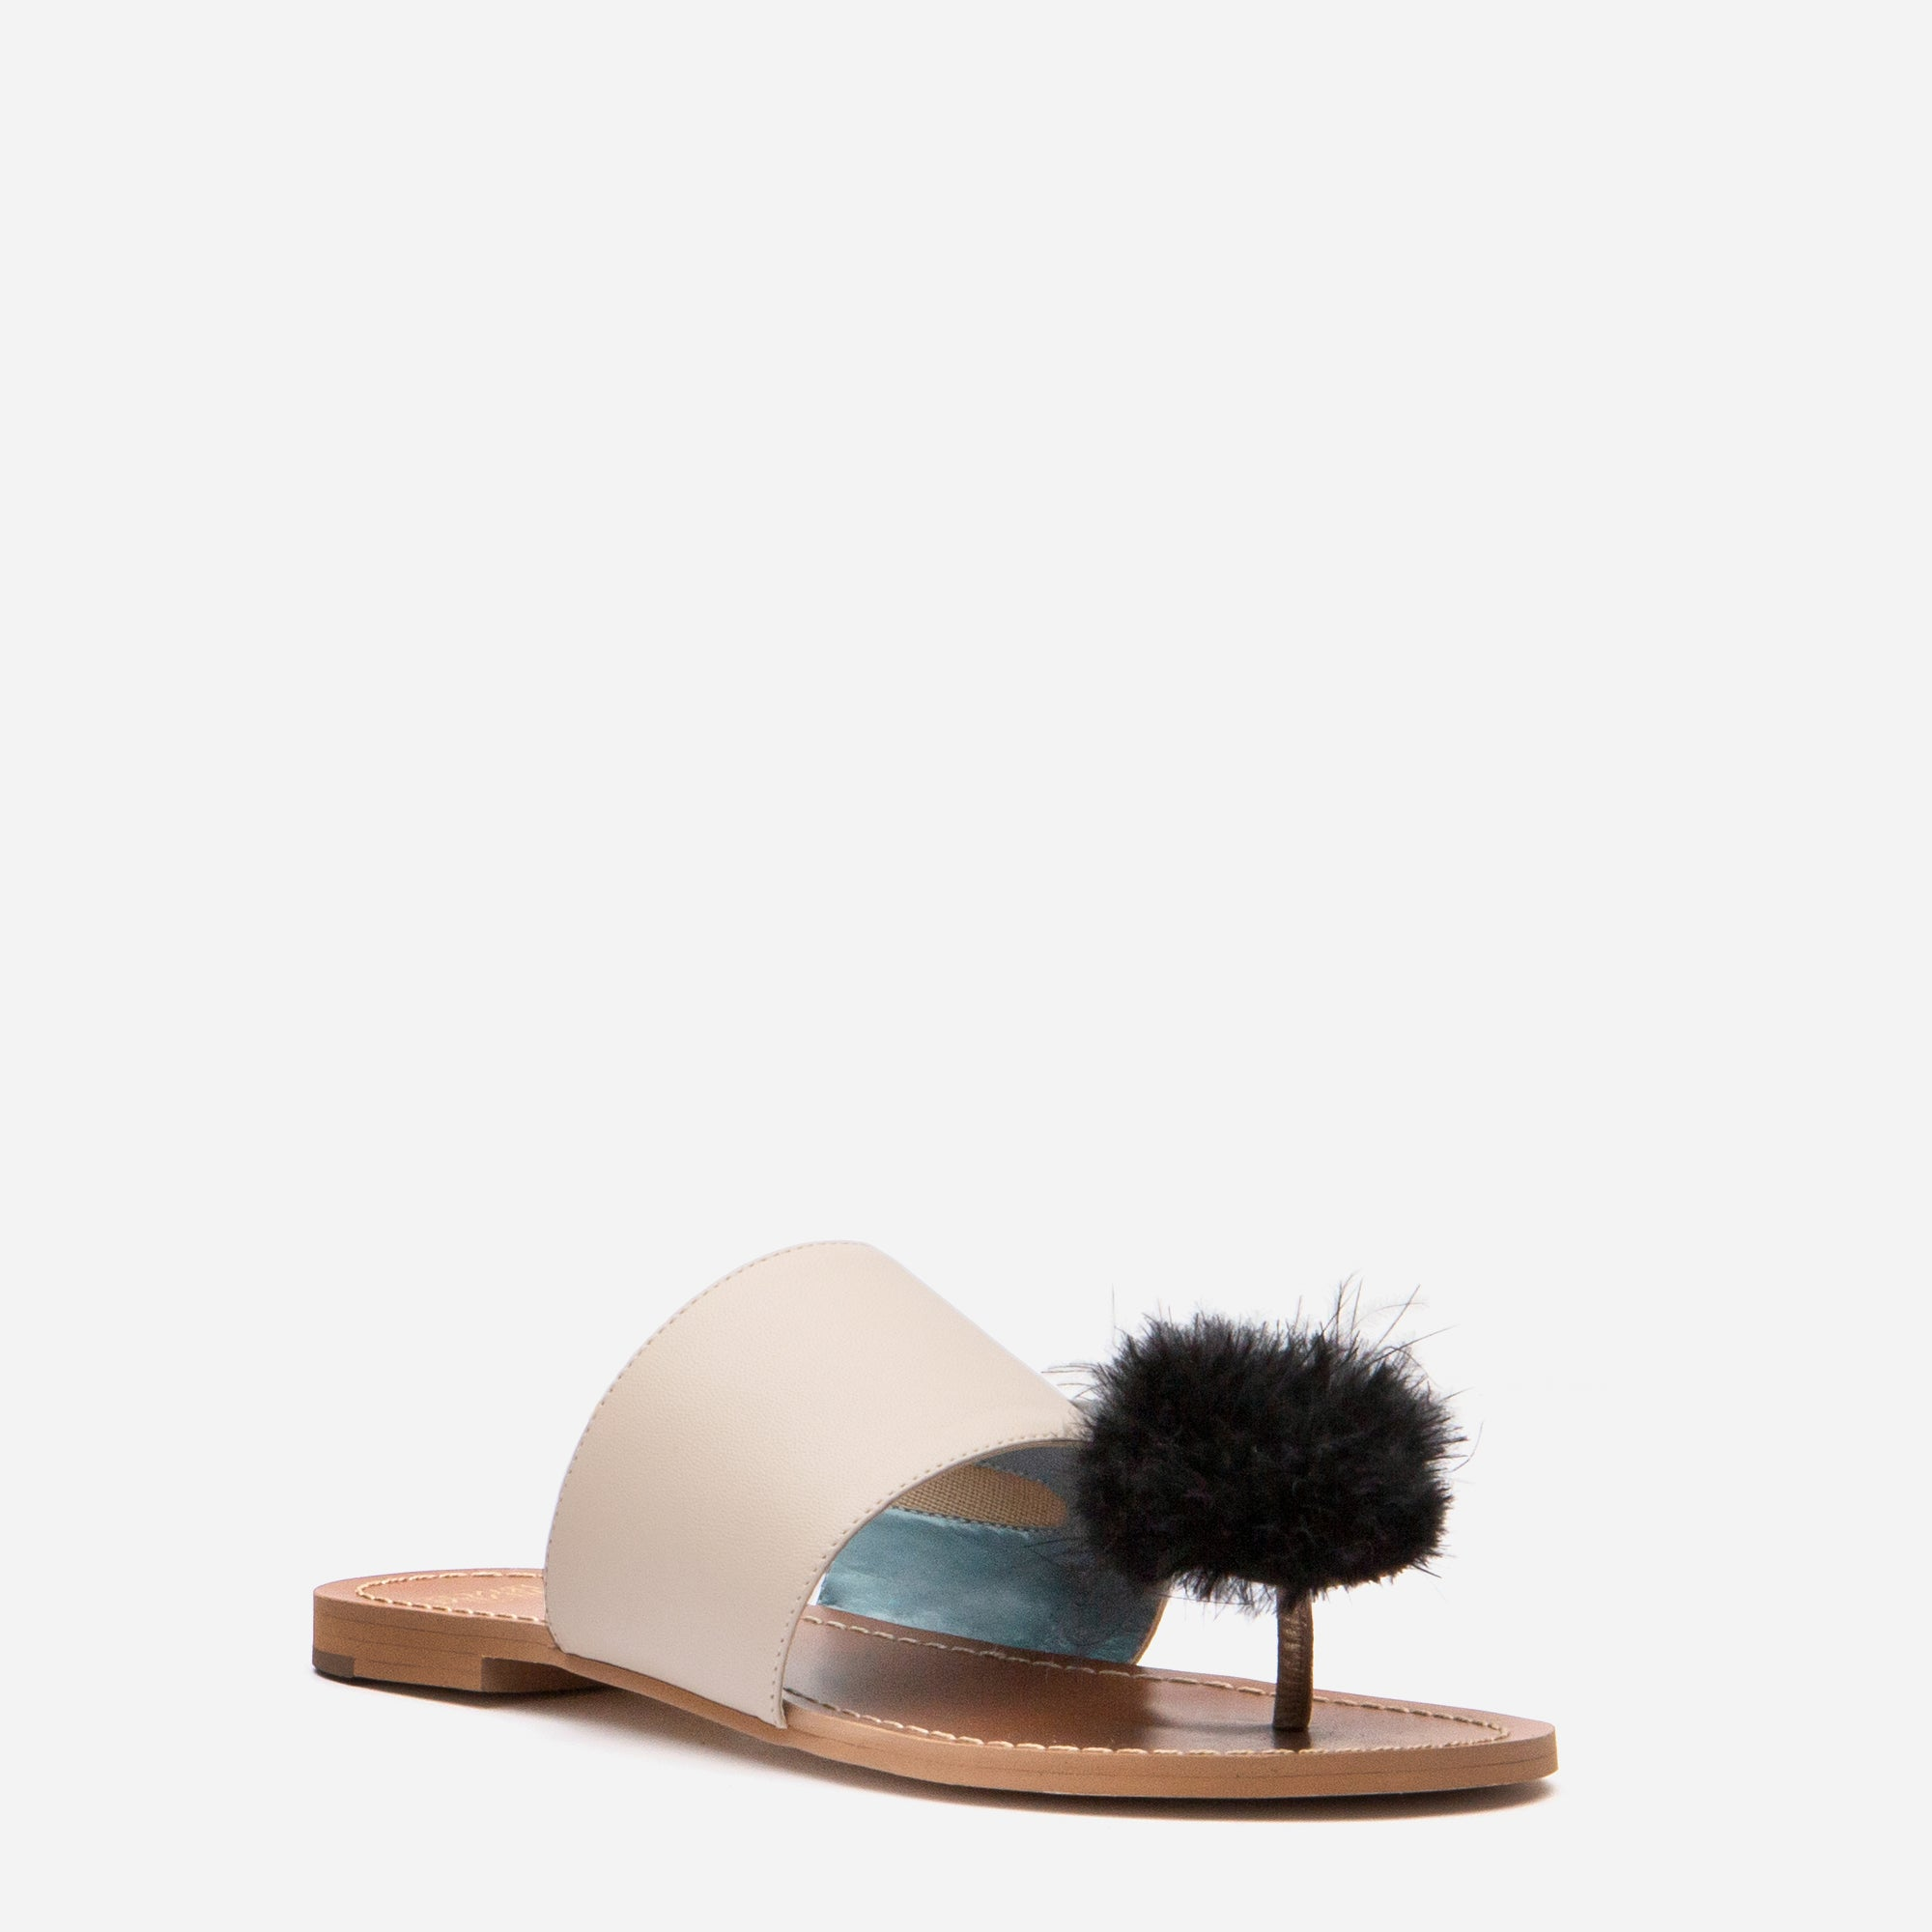 Clementine Pom Pom Sandals Oyster